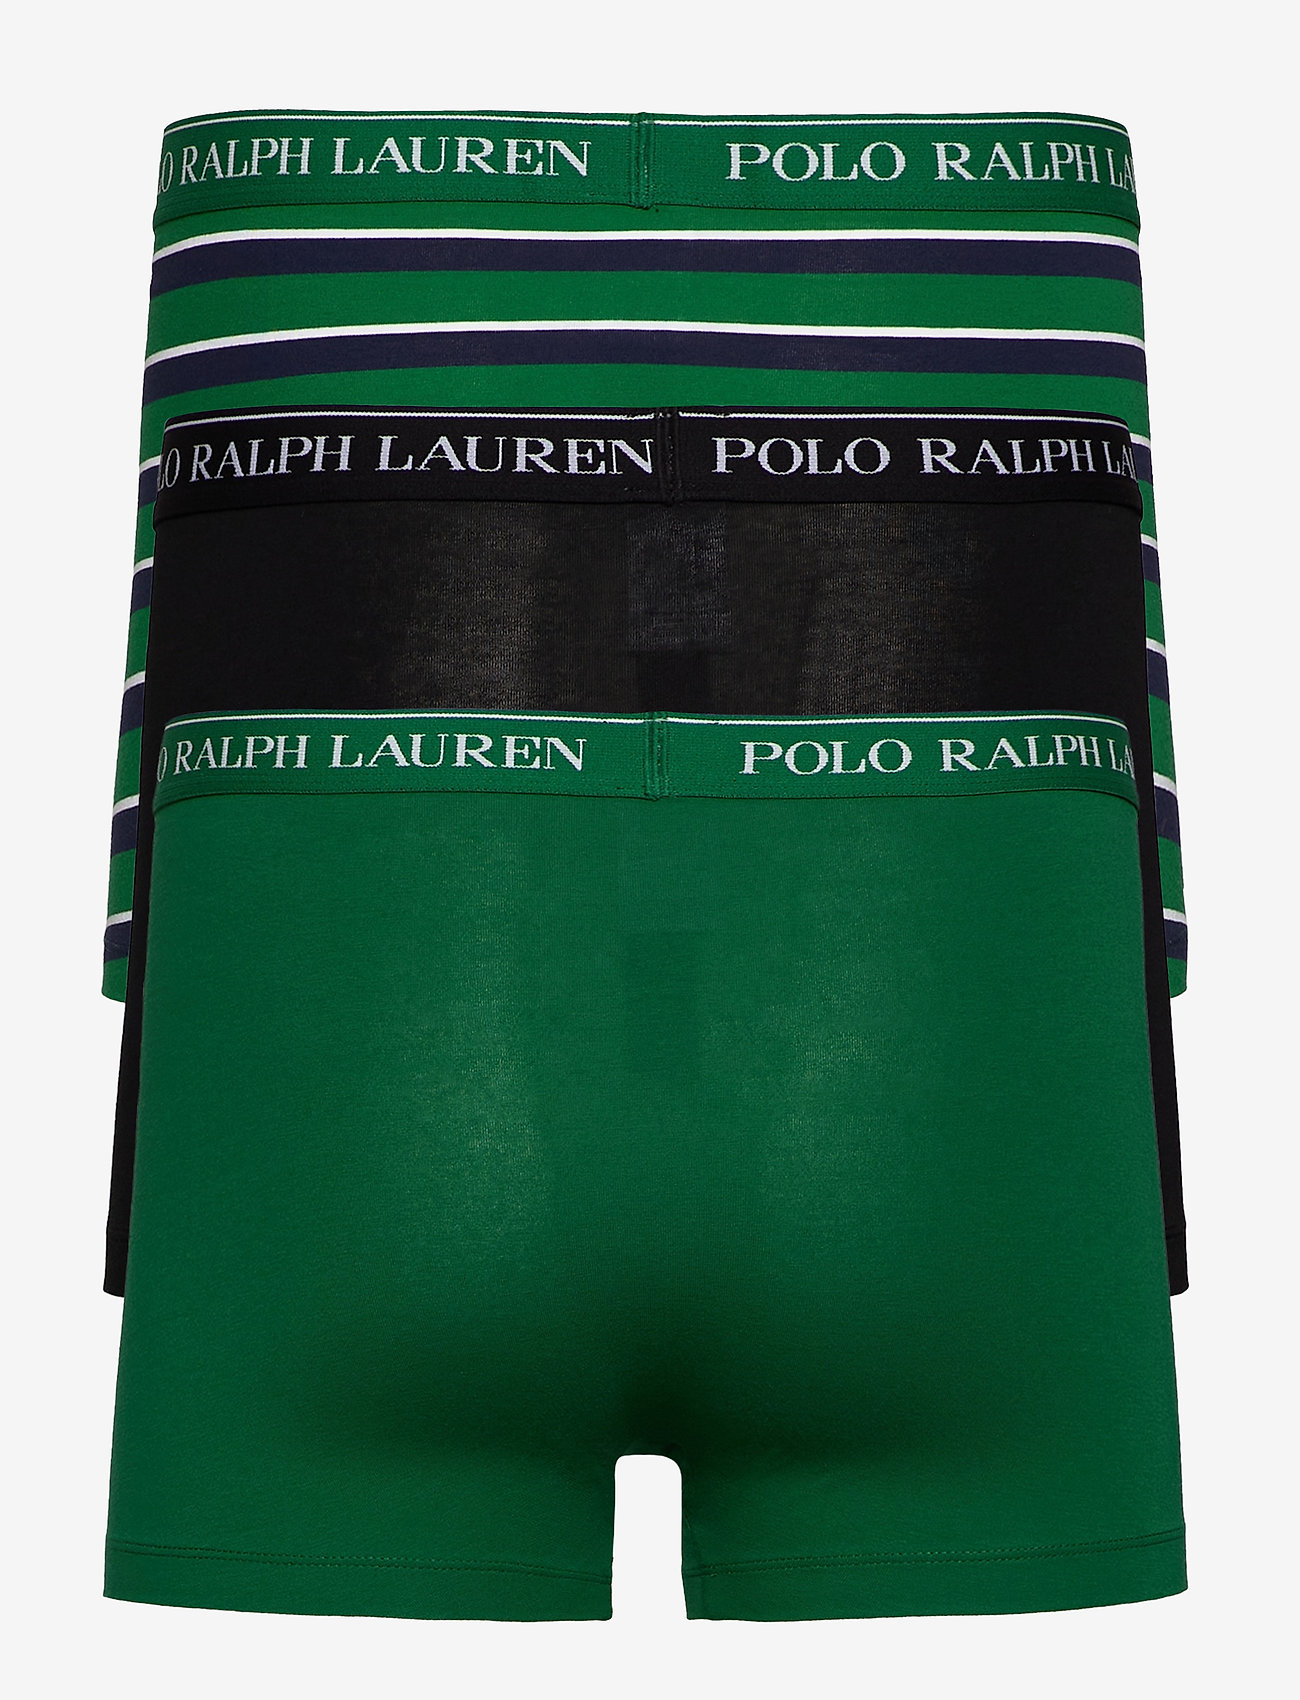 Polo Ralph Lauren Underwear - Stretch-Cotton Trunk 3-Pack - boxers - 3pk blk/grn strp/ - 1